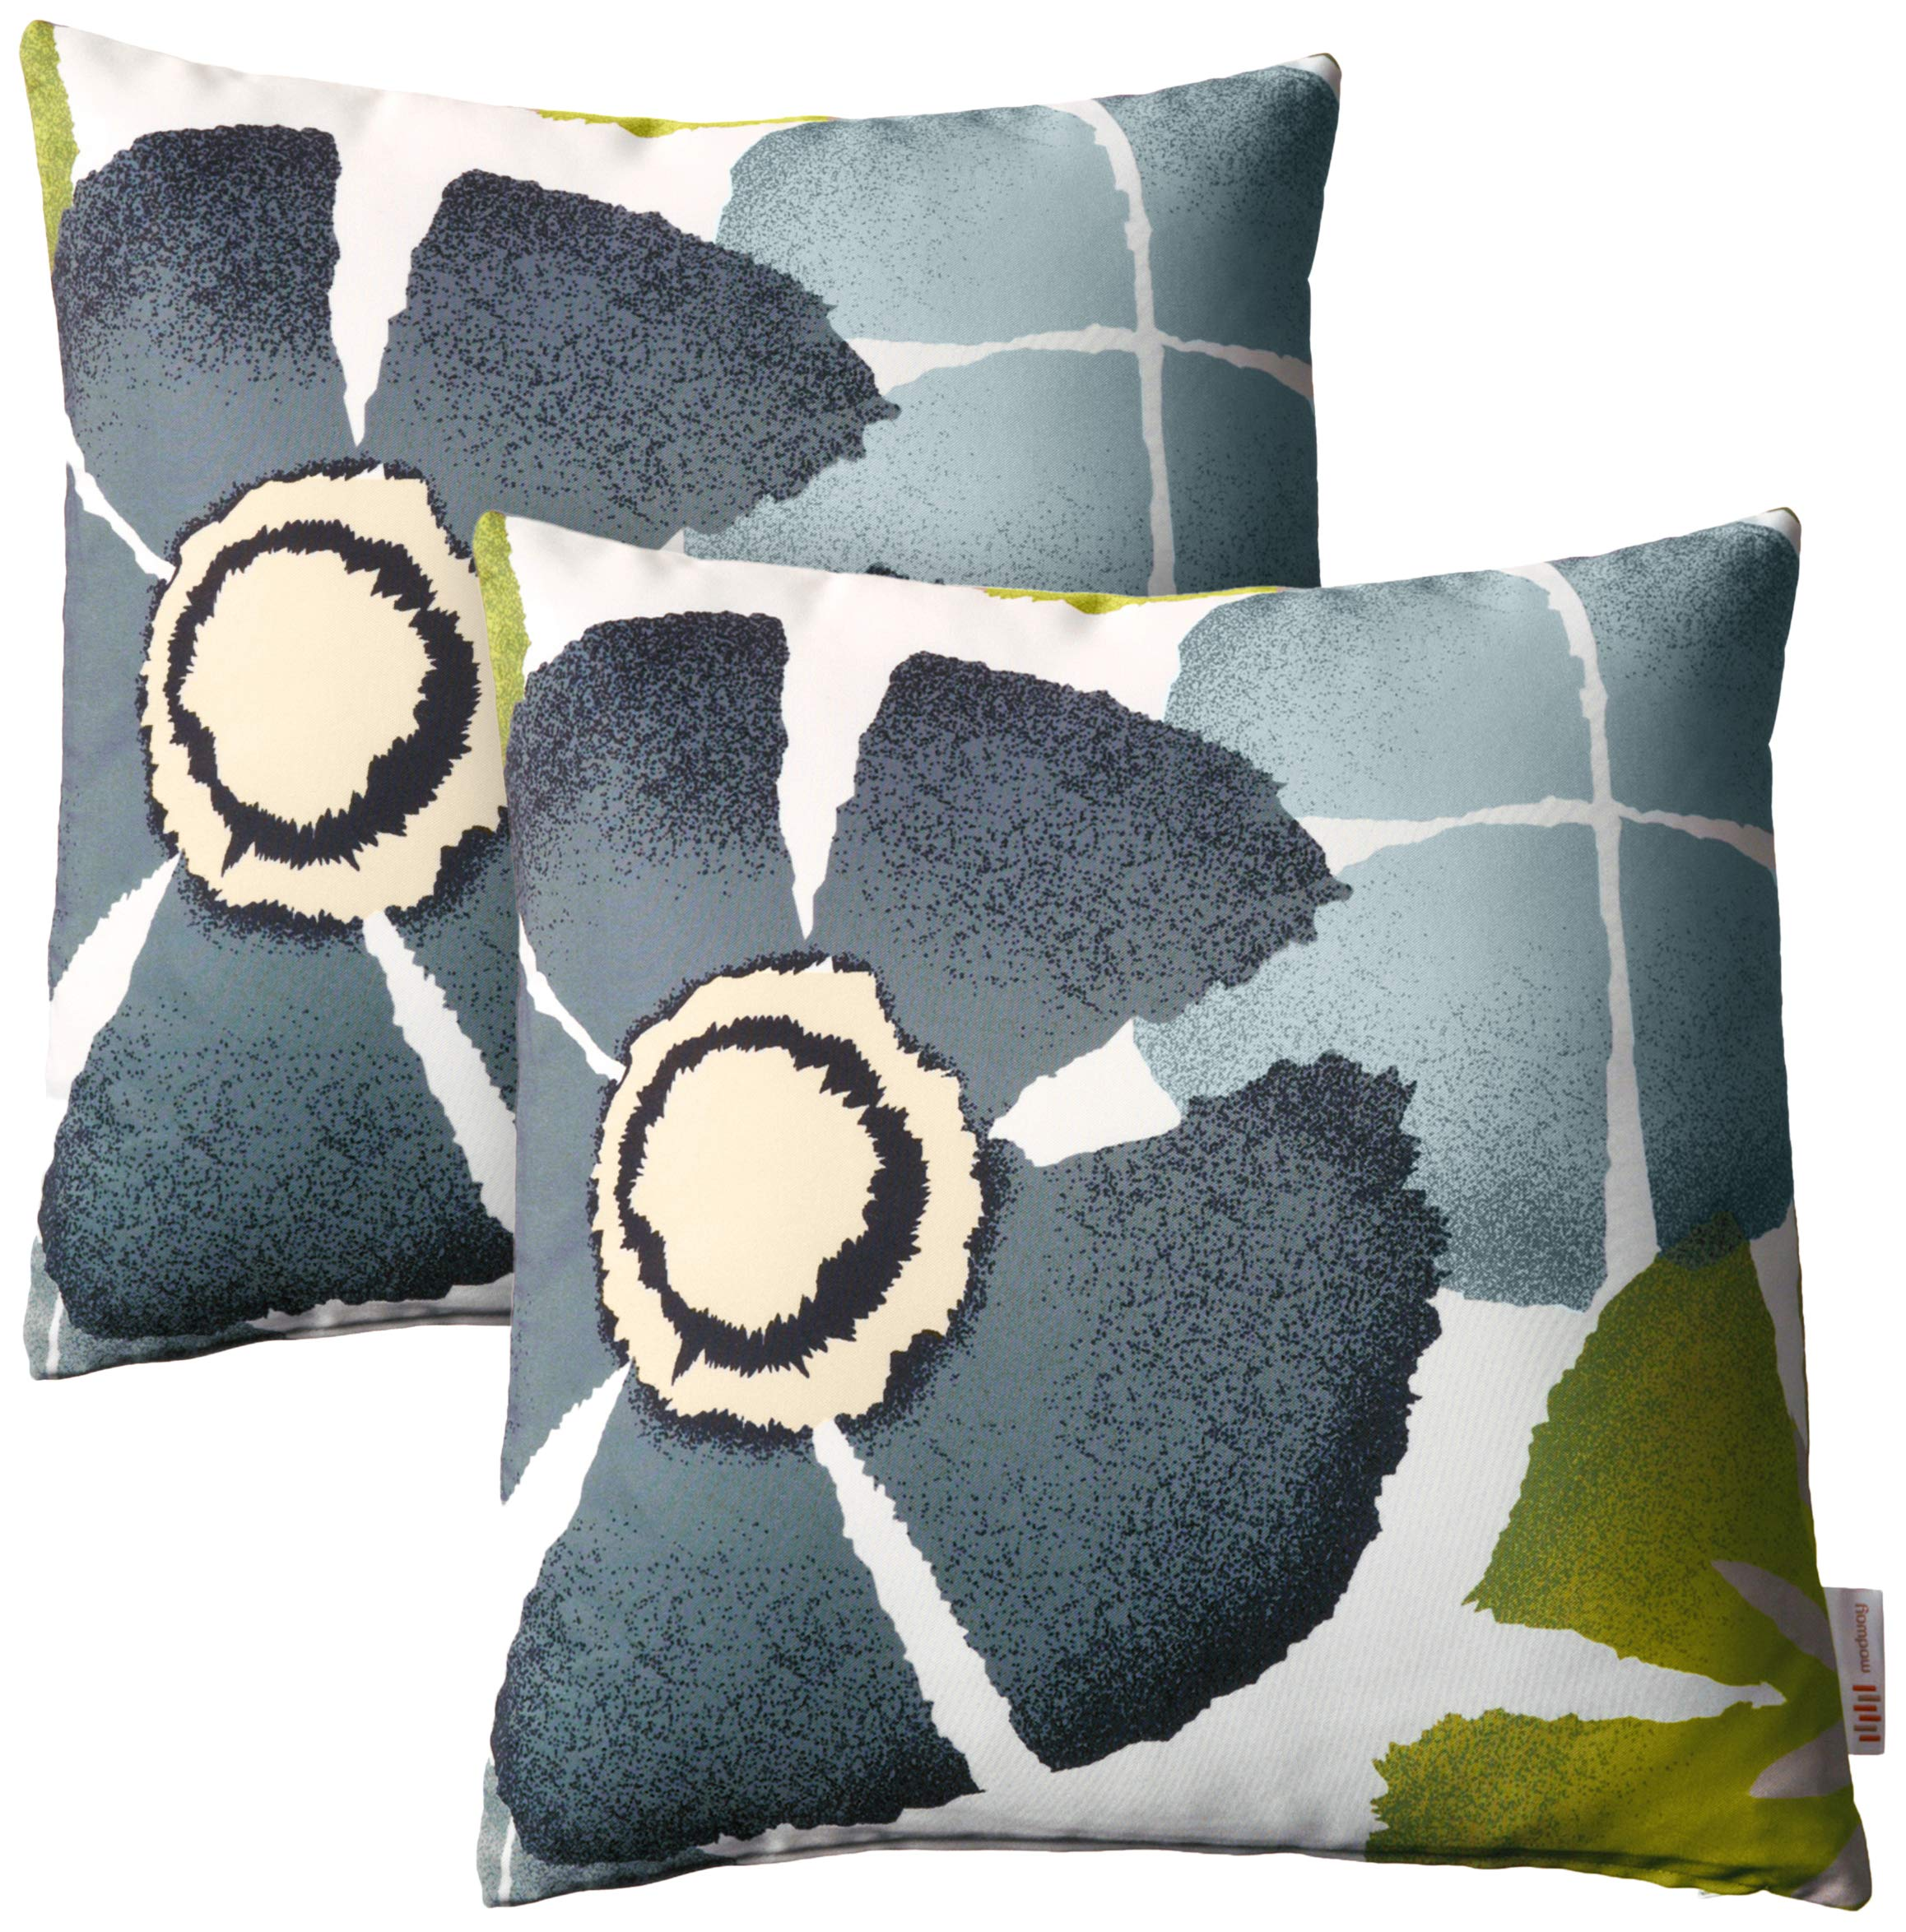 Modway Outdoor Indoor Two All Weather Patio Throw Pillows in Botanical by Modway